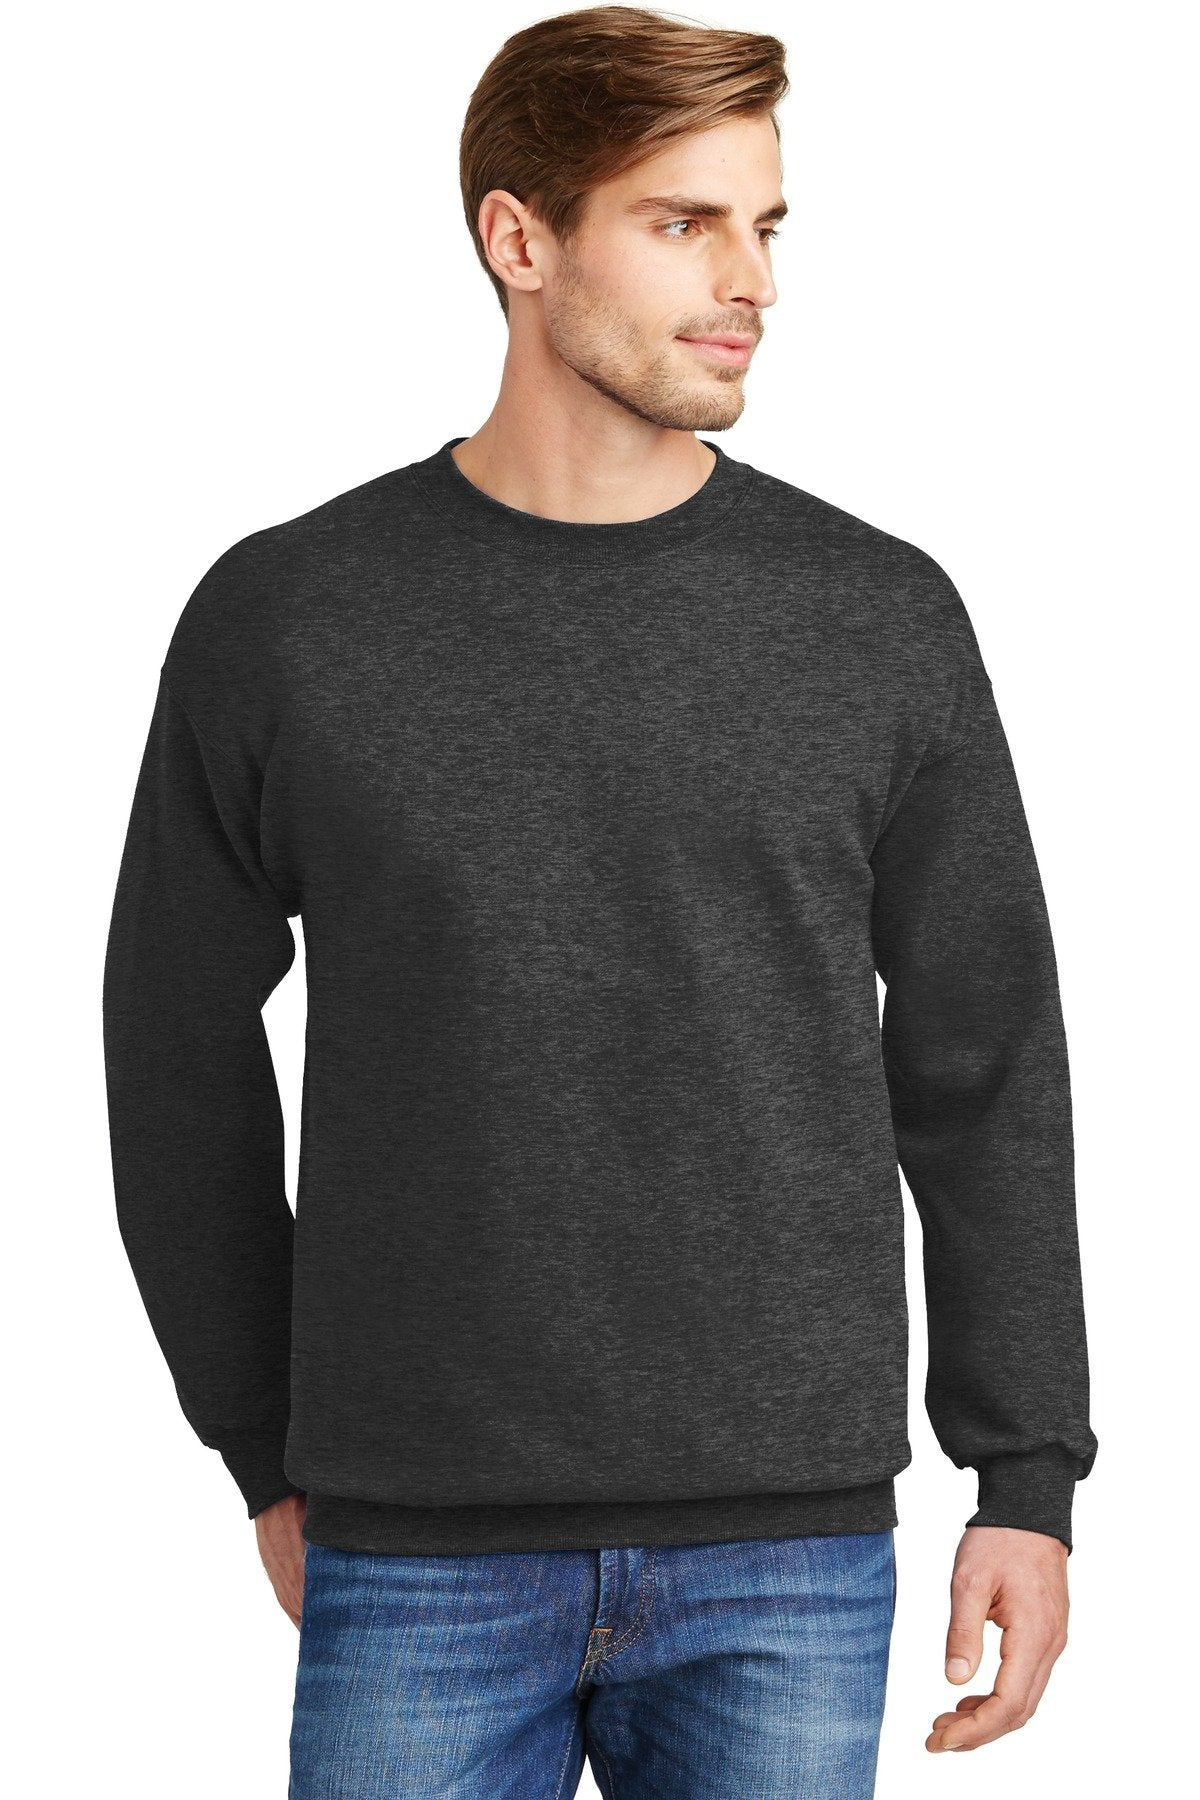 Charcoal Heather - Hanes F260